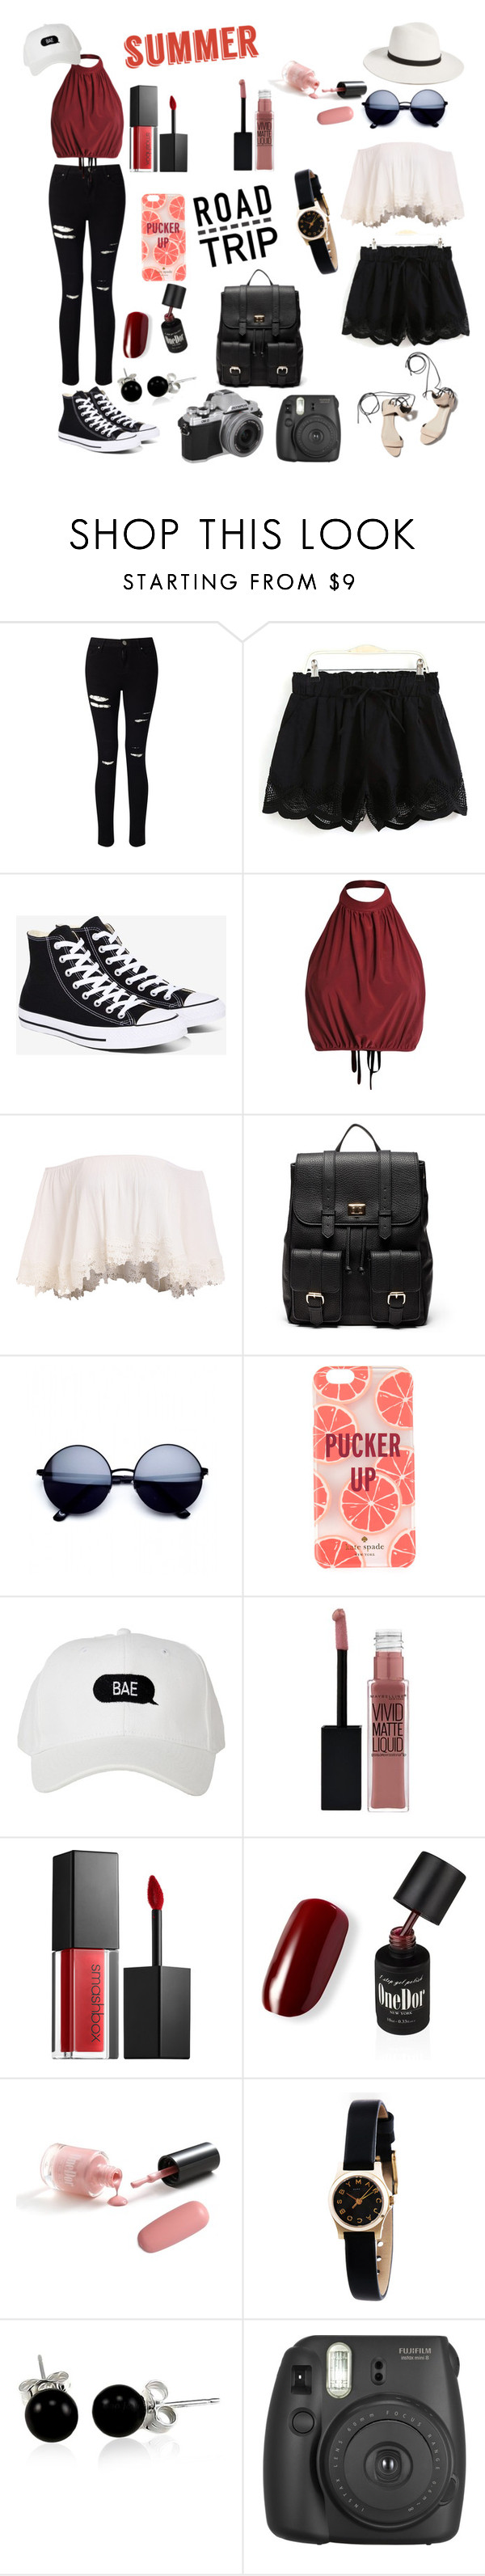 """""""SUMMER ROADTRIP"""" by rapperdancer ❤ liked on Polyvore featuring Miss Selfridge, 3.1 Phillip Lim, Converse, Sole Society, Kate Spade, Maybelline, Smashbox, Marc by Marc Jacobs, Bling Jewelry and Janessa Leone"""